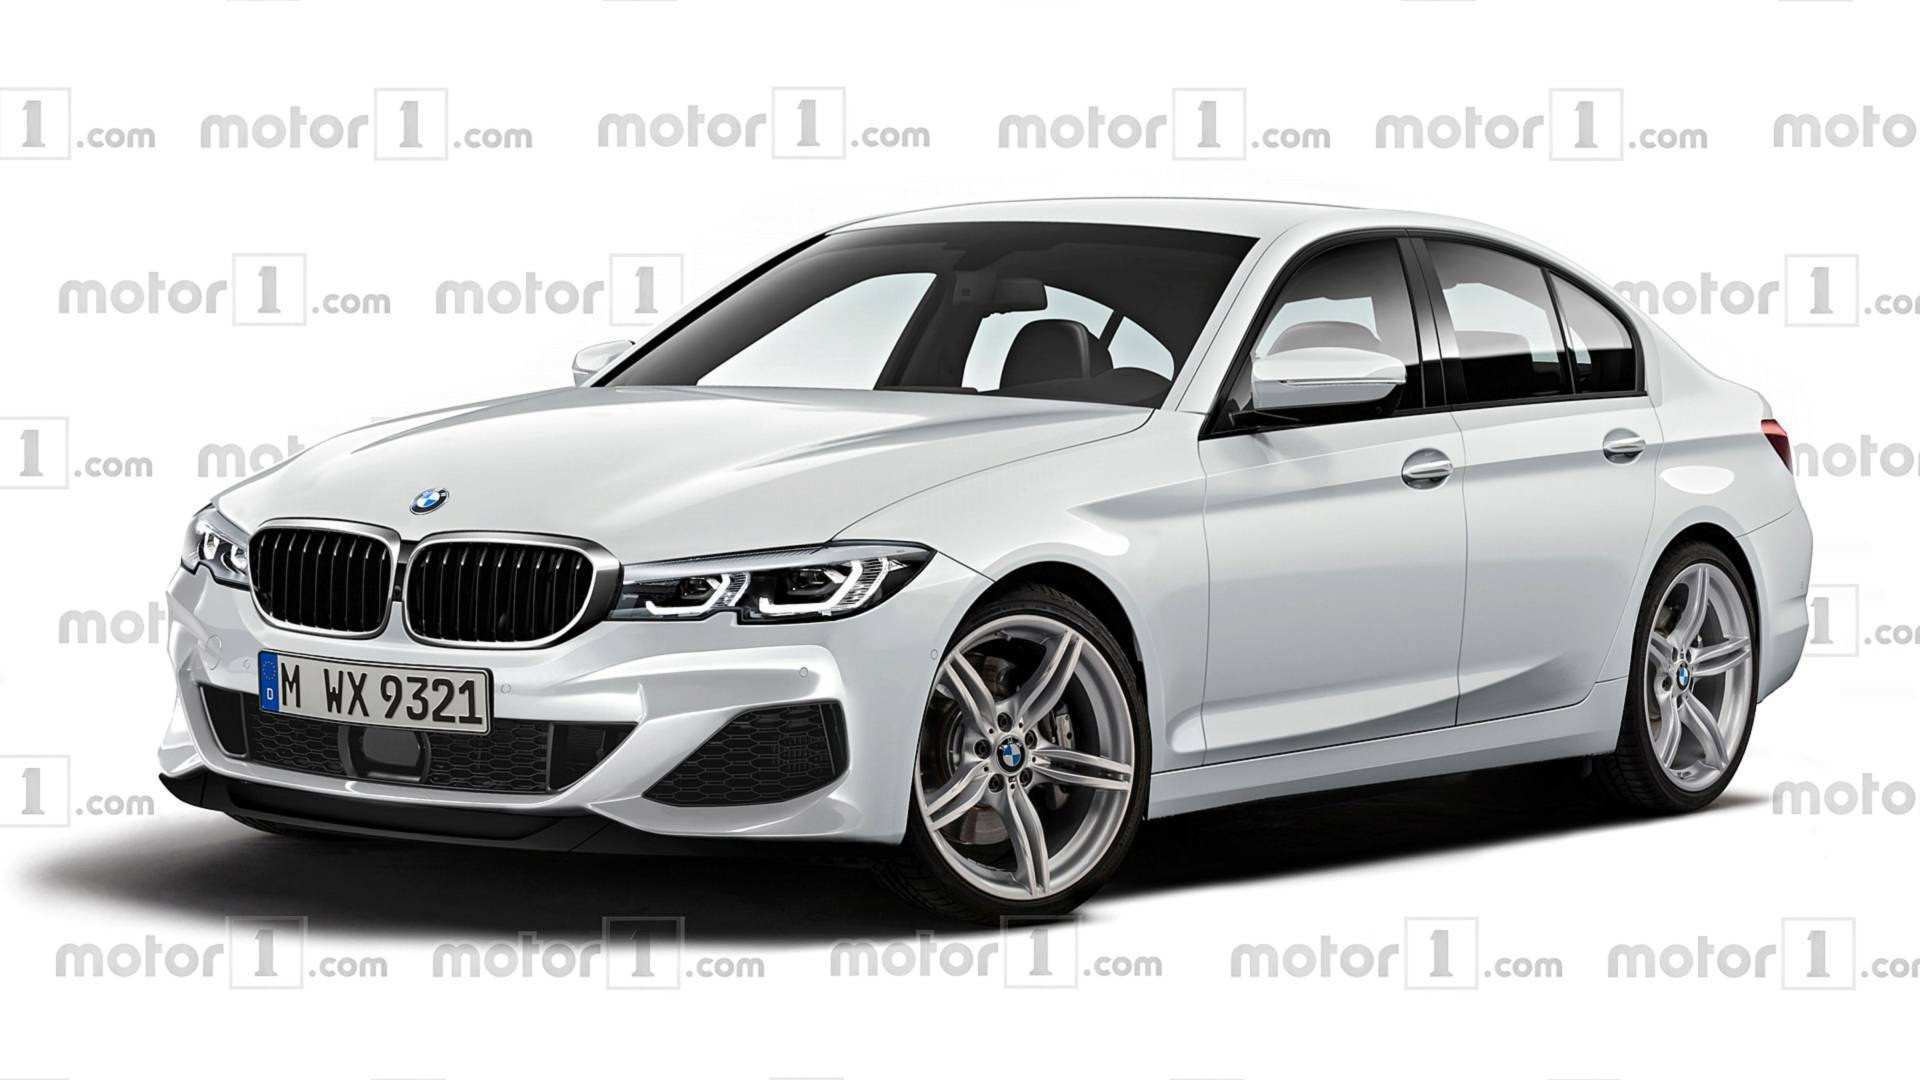 96 The 2019 BMW 3 Series Brings Release